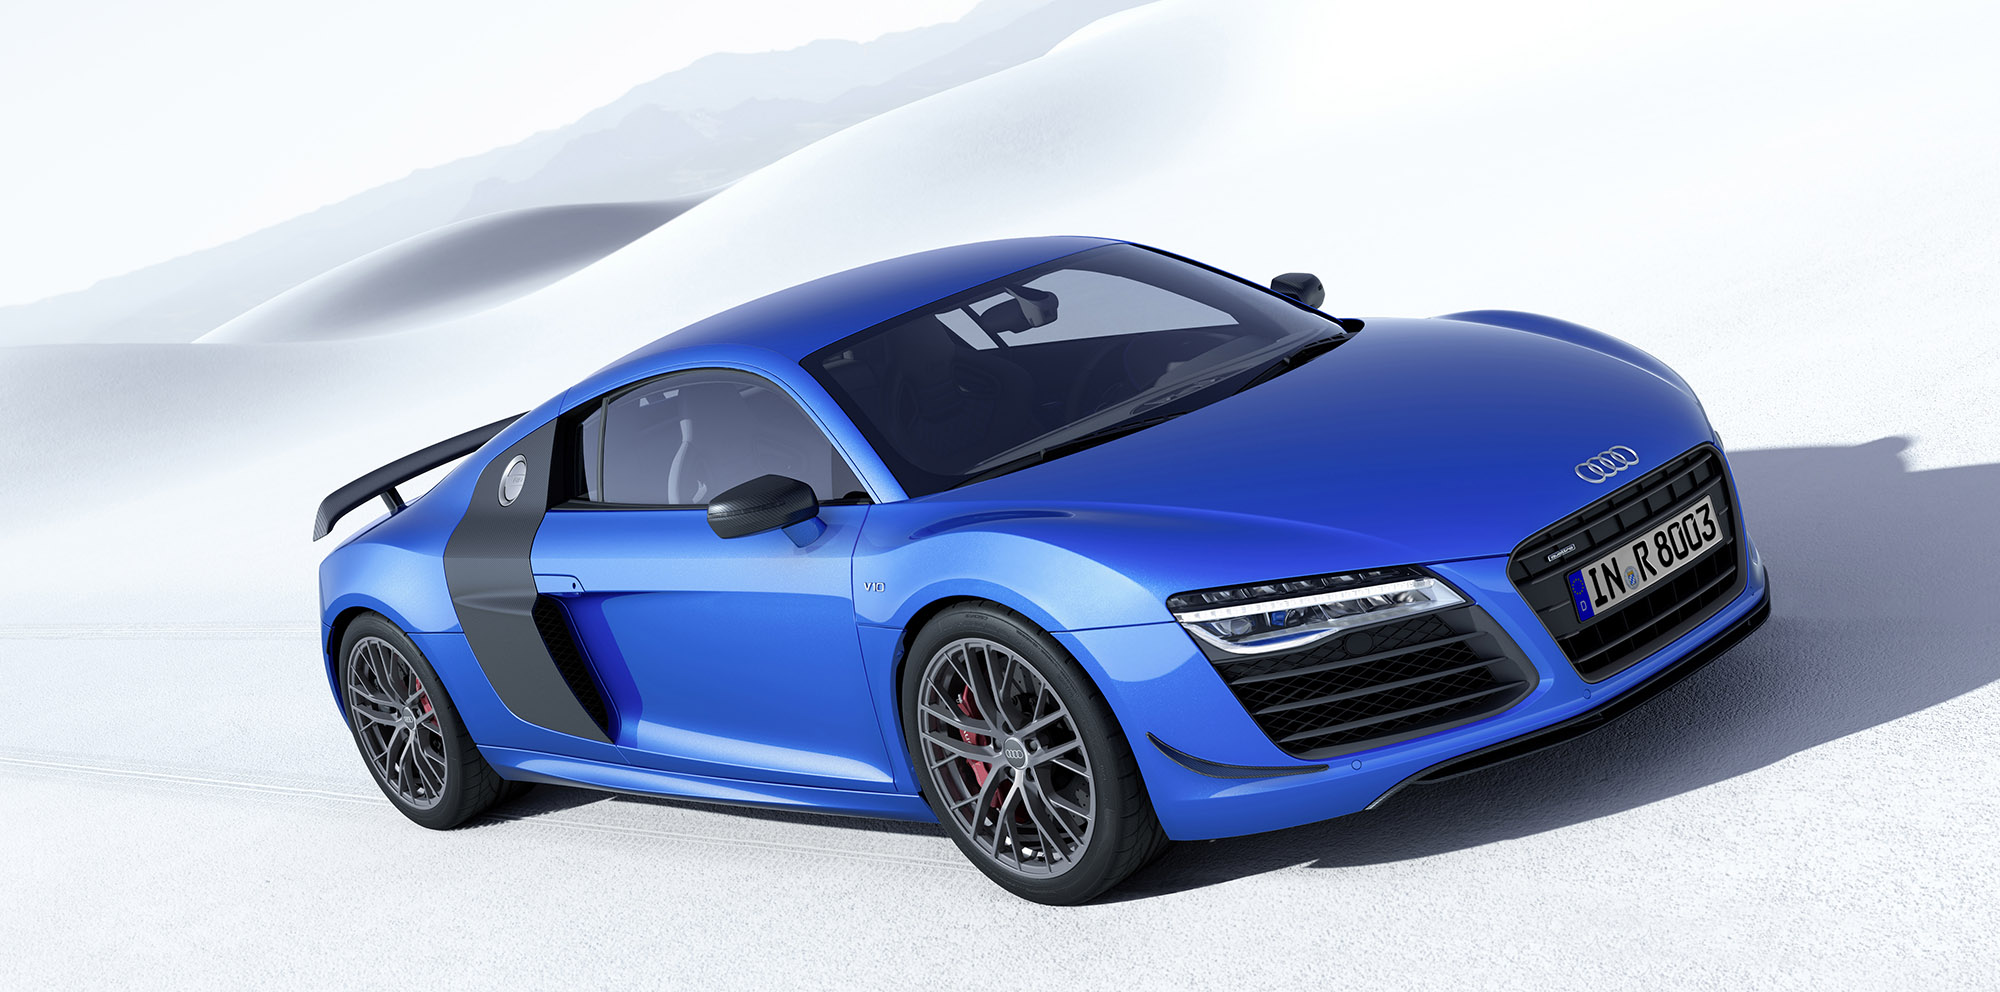 Audi R8 Lmx Trumps Bmw I8 To Be First Production Car With Laser High Beams Caradvice